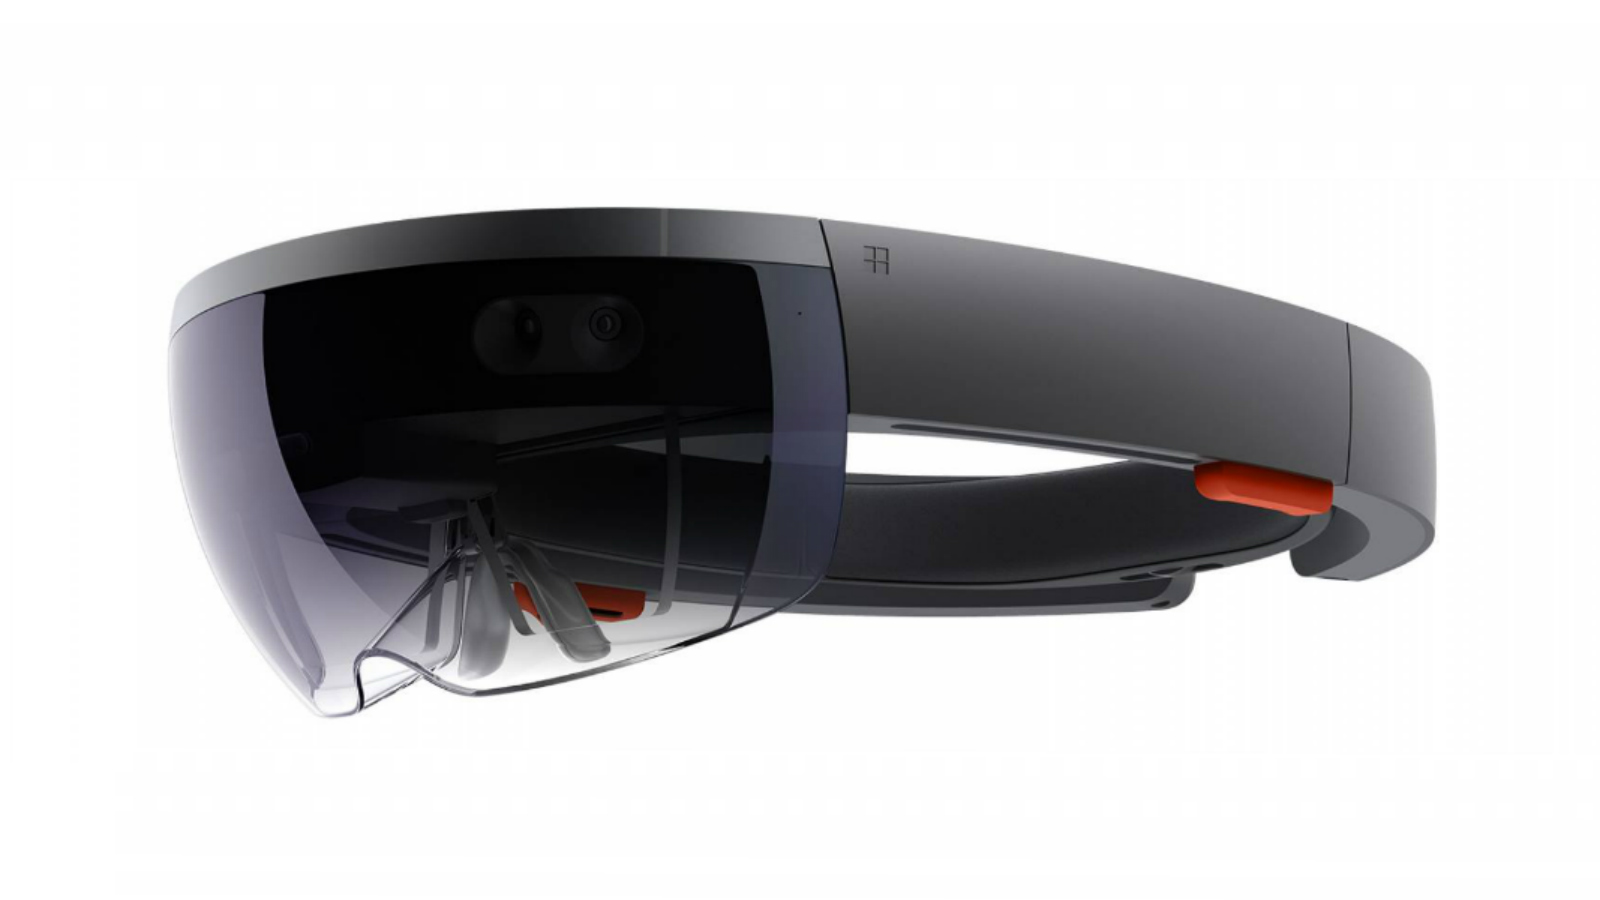 Report: Microsoft Holding a HoloLens 2 Press Event Next Month